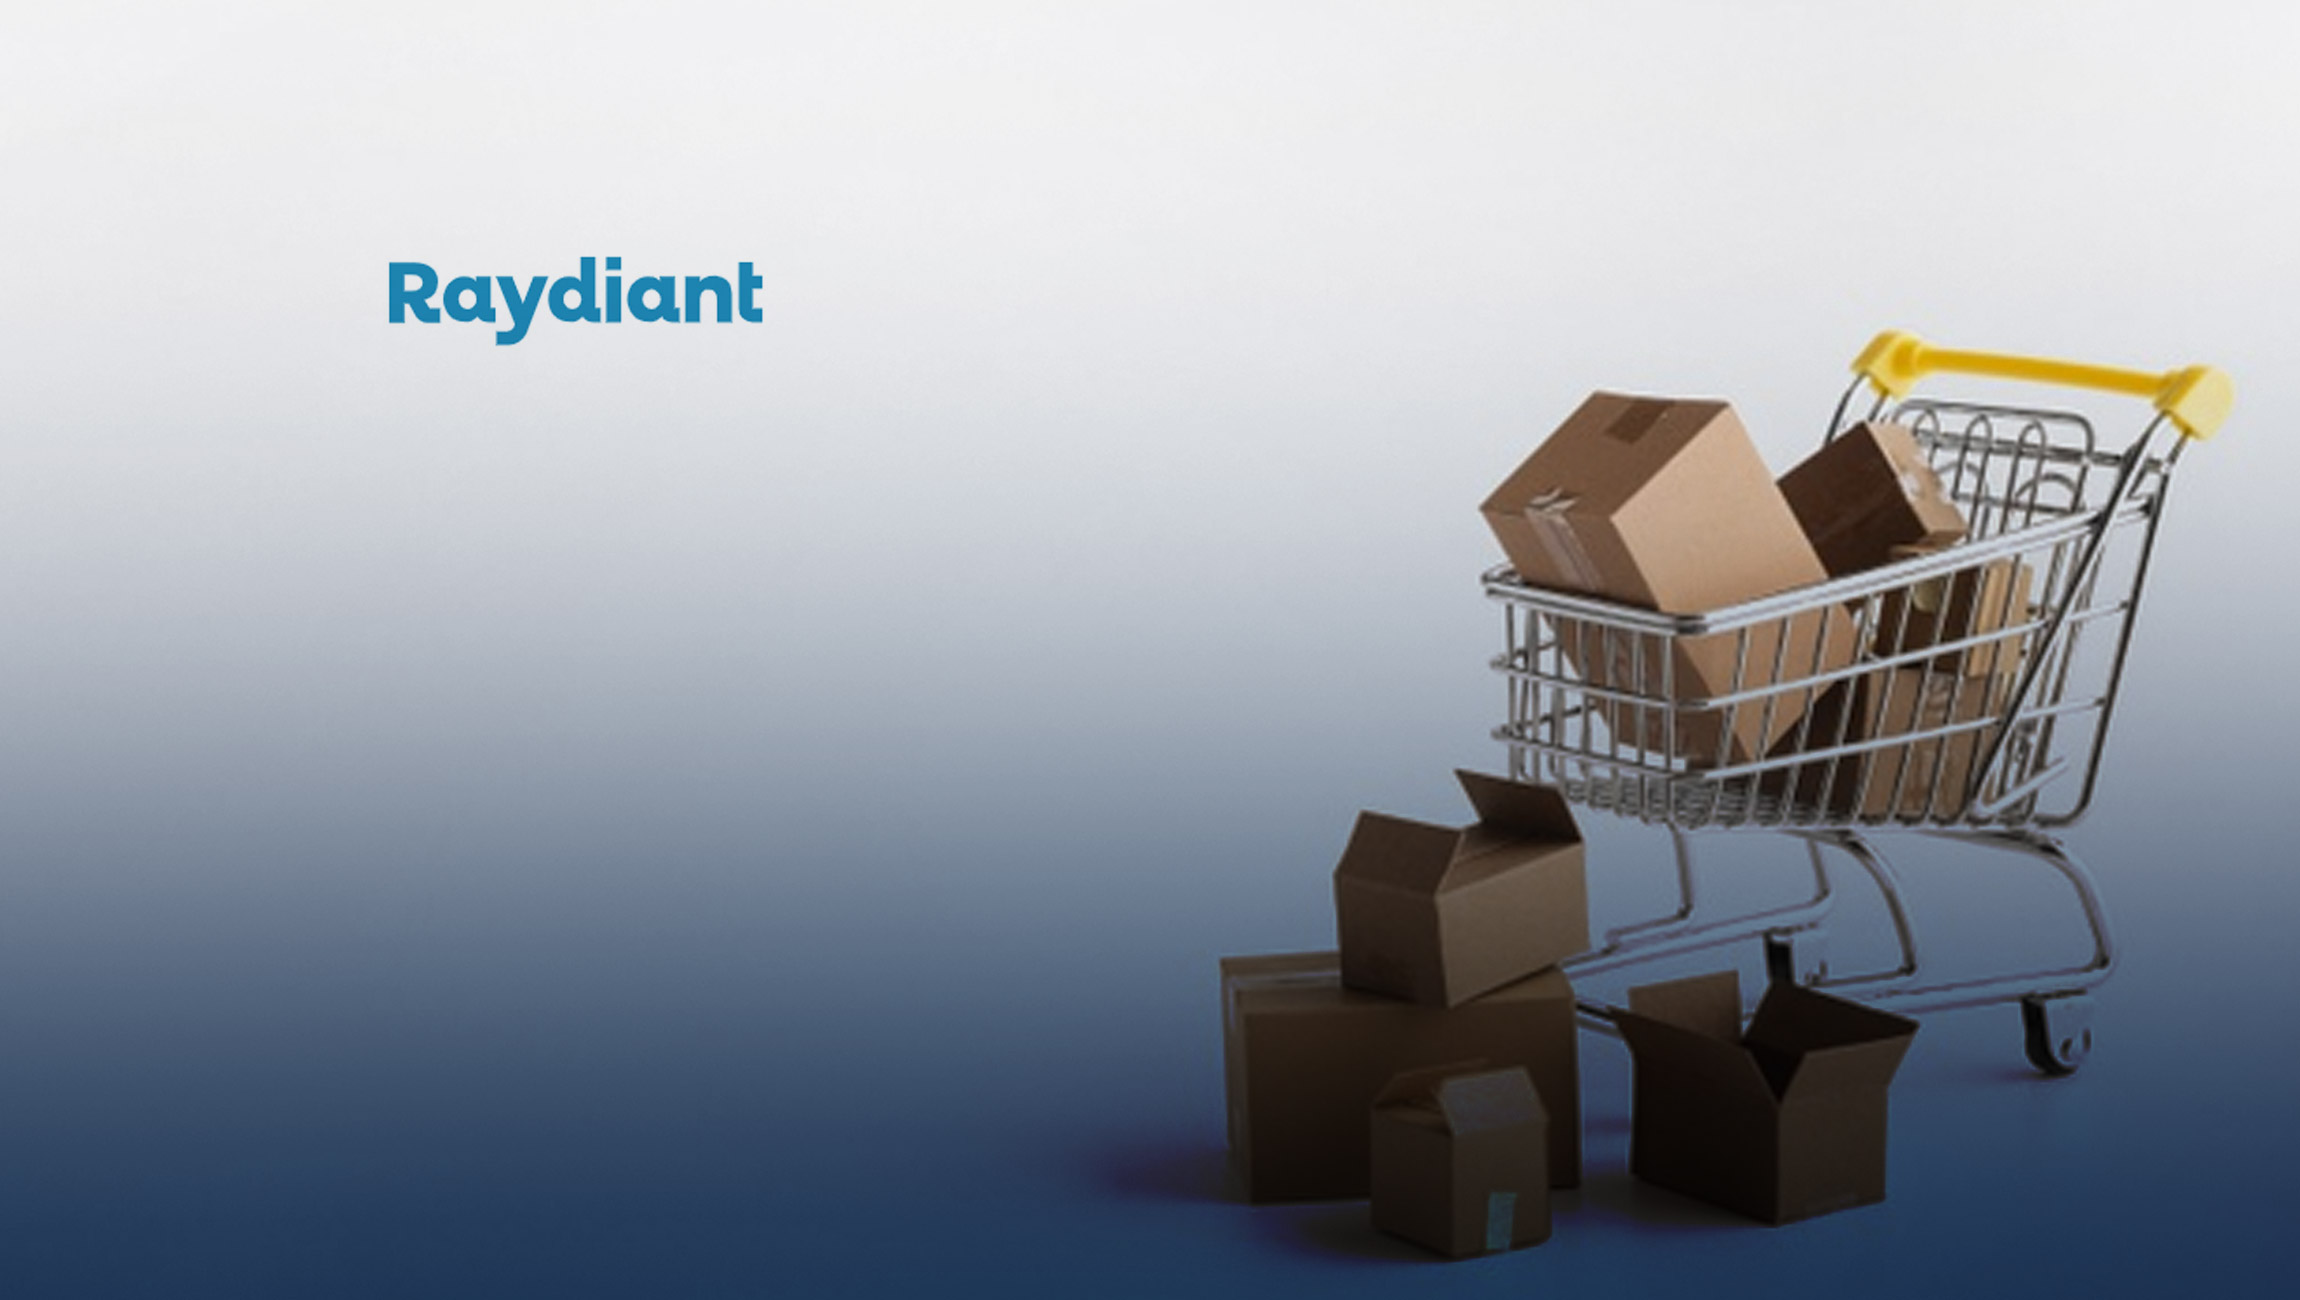 Raydiant's New Consumer Behavior Report Highlights the Importance of In-Store Experiences